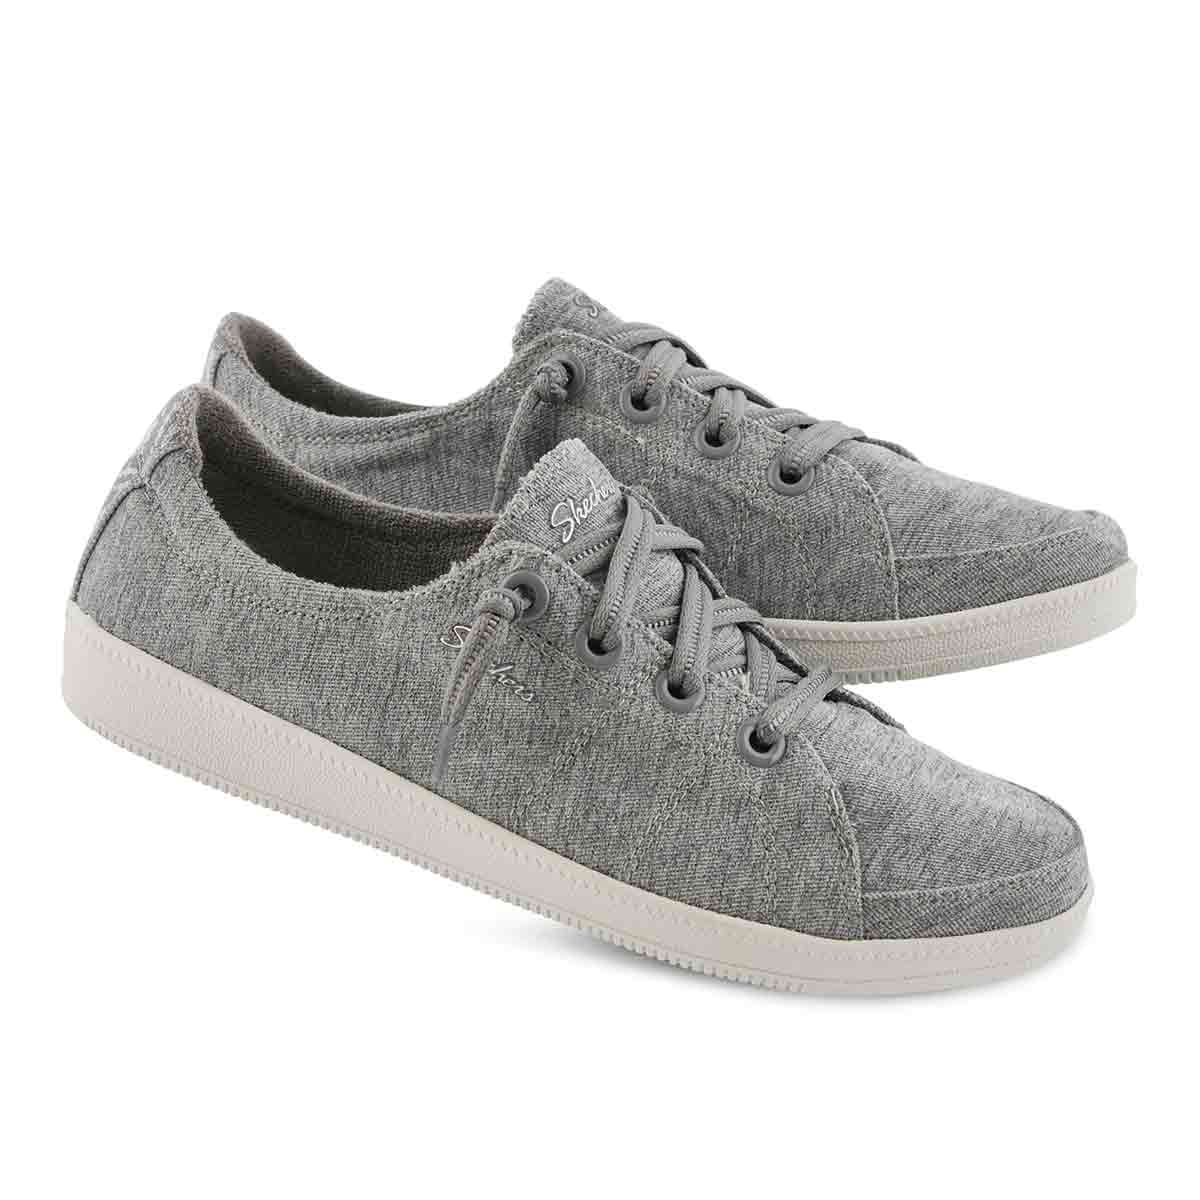 Lds Madison Ave Inner City grey slip on